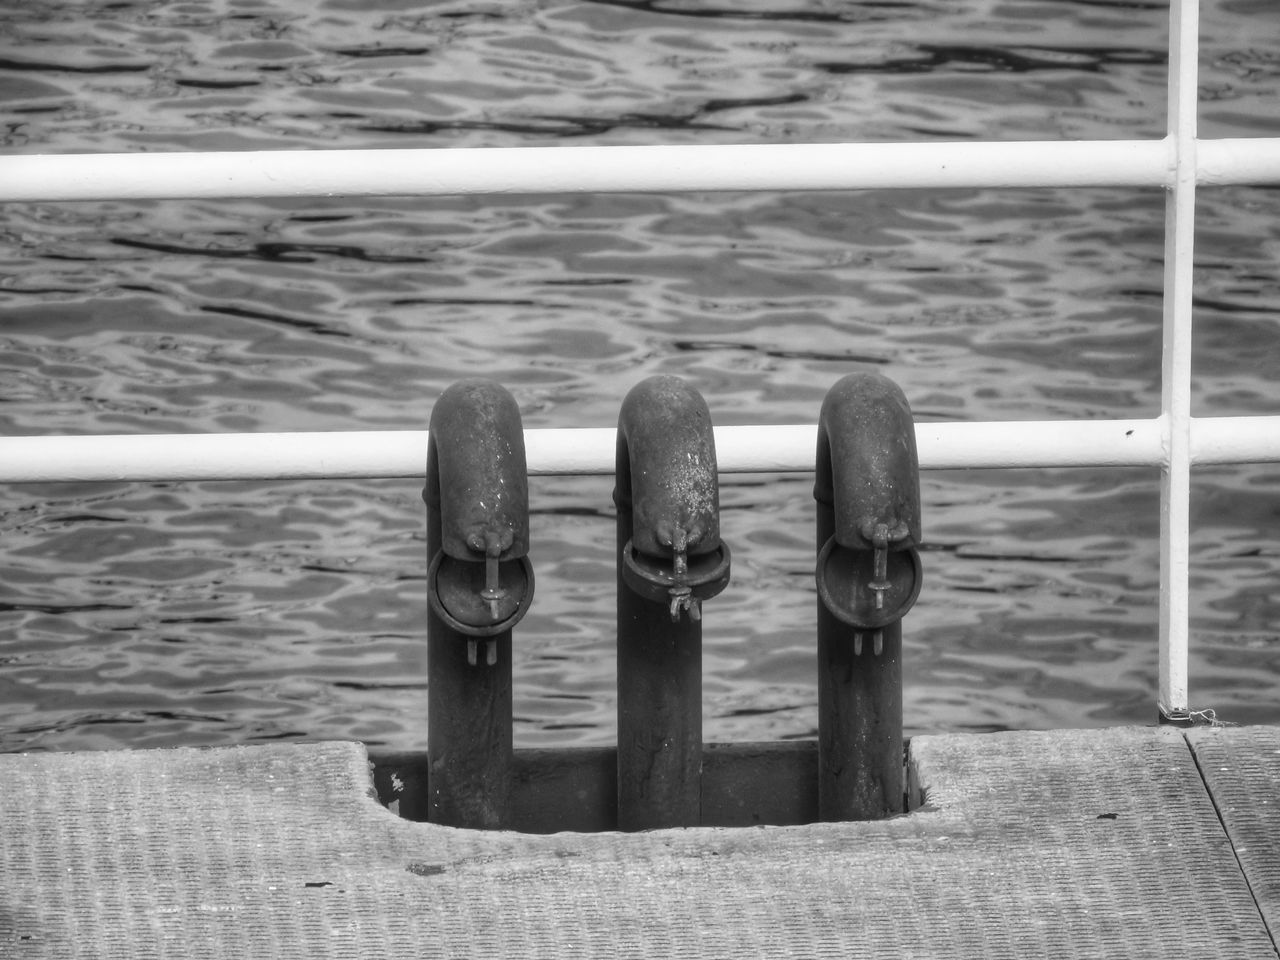 Beach Beautifully Organized Boat Dock Check This Out Close-up Day Docks EyeEm Best Shots High Angle View Metal Metallic Mooring Post Nature No People Outdoors Pier Railing Railings Rippled Rippled Water Riverside Three Of A Kind Water Waterfront Wave